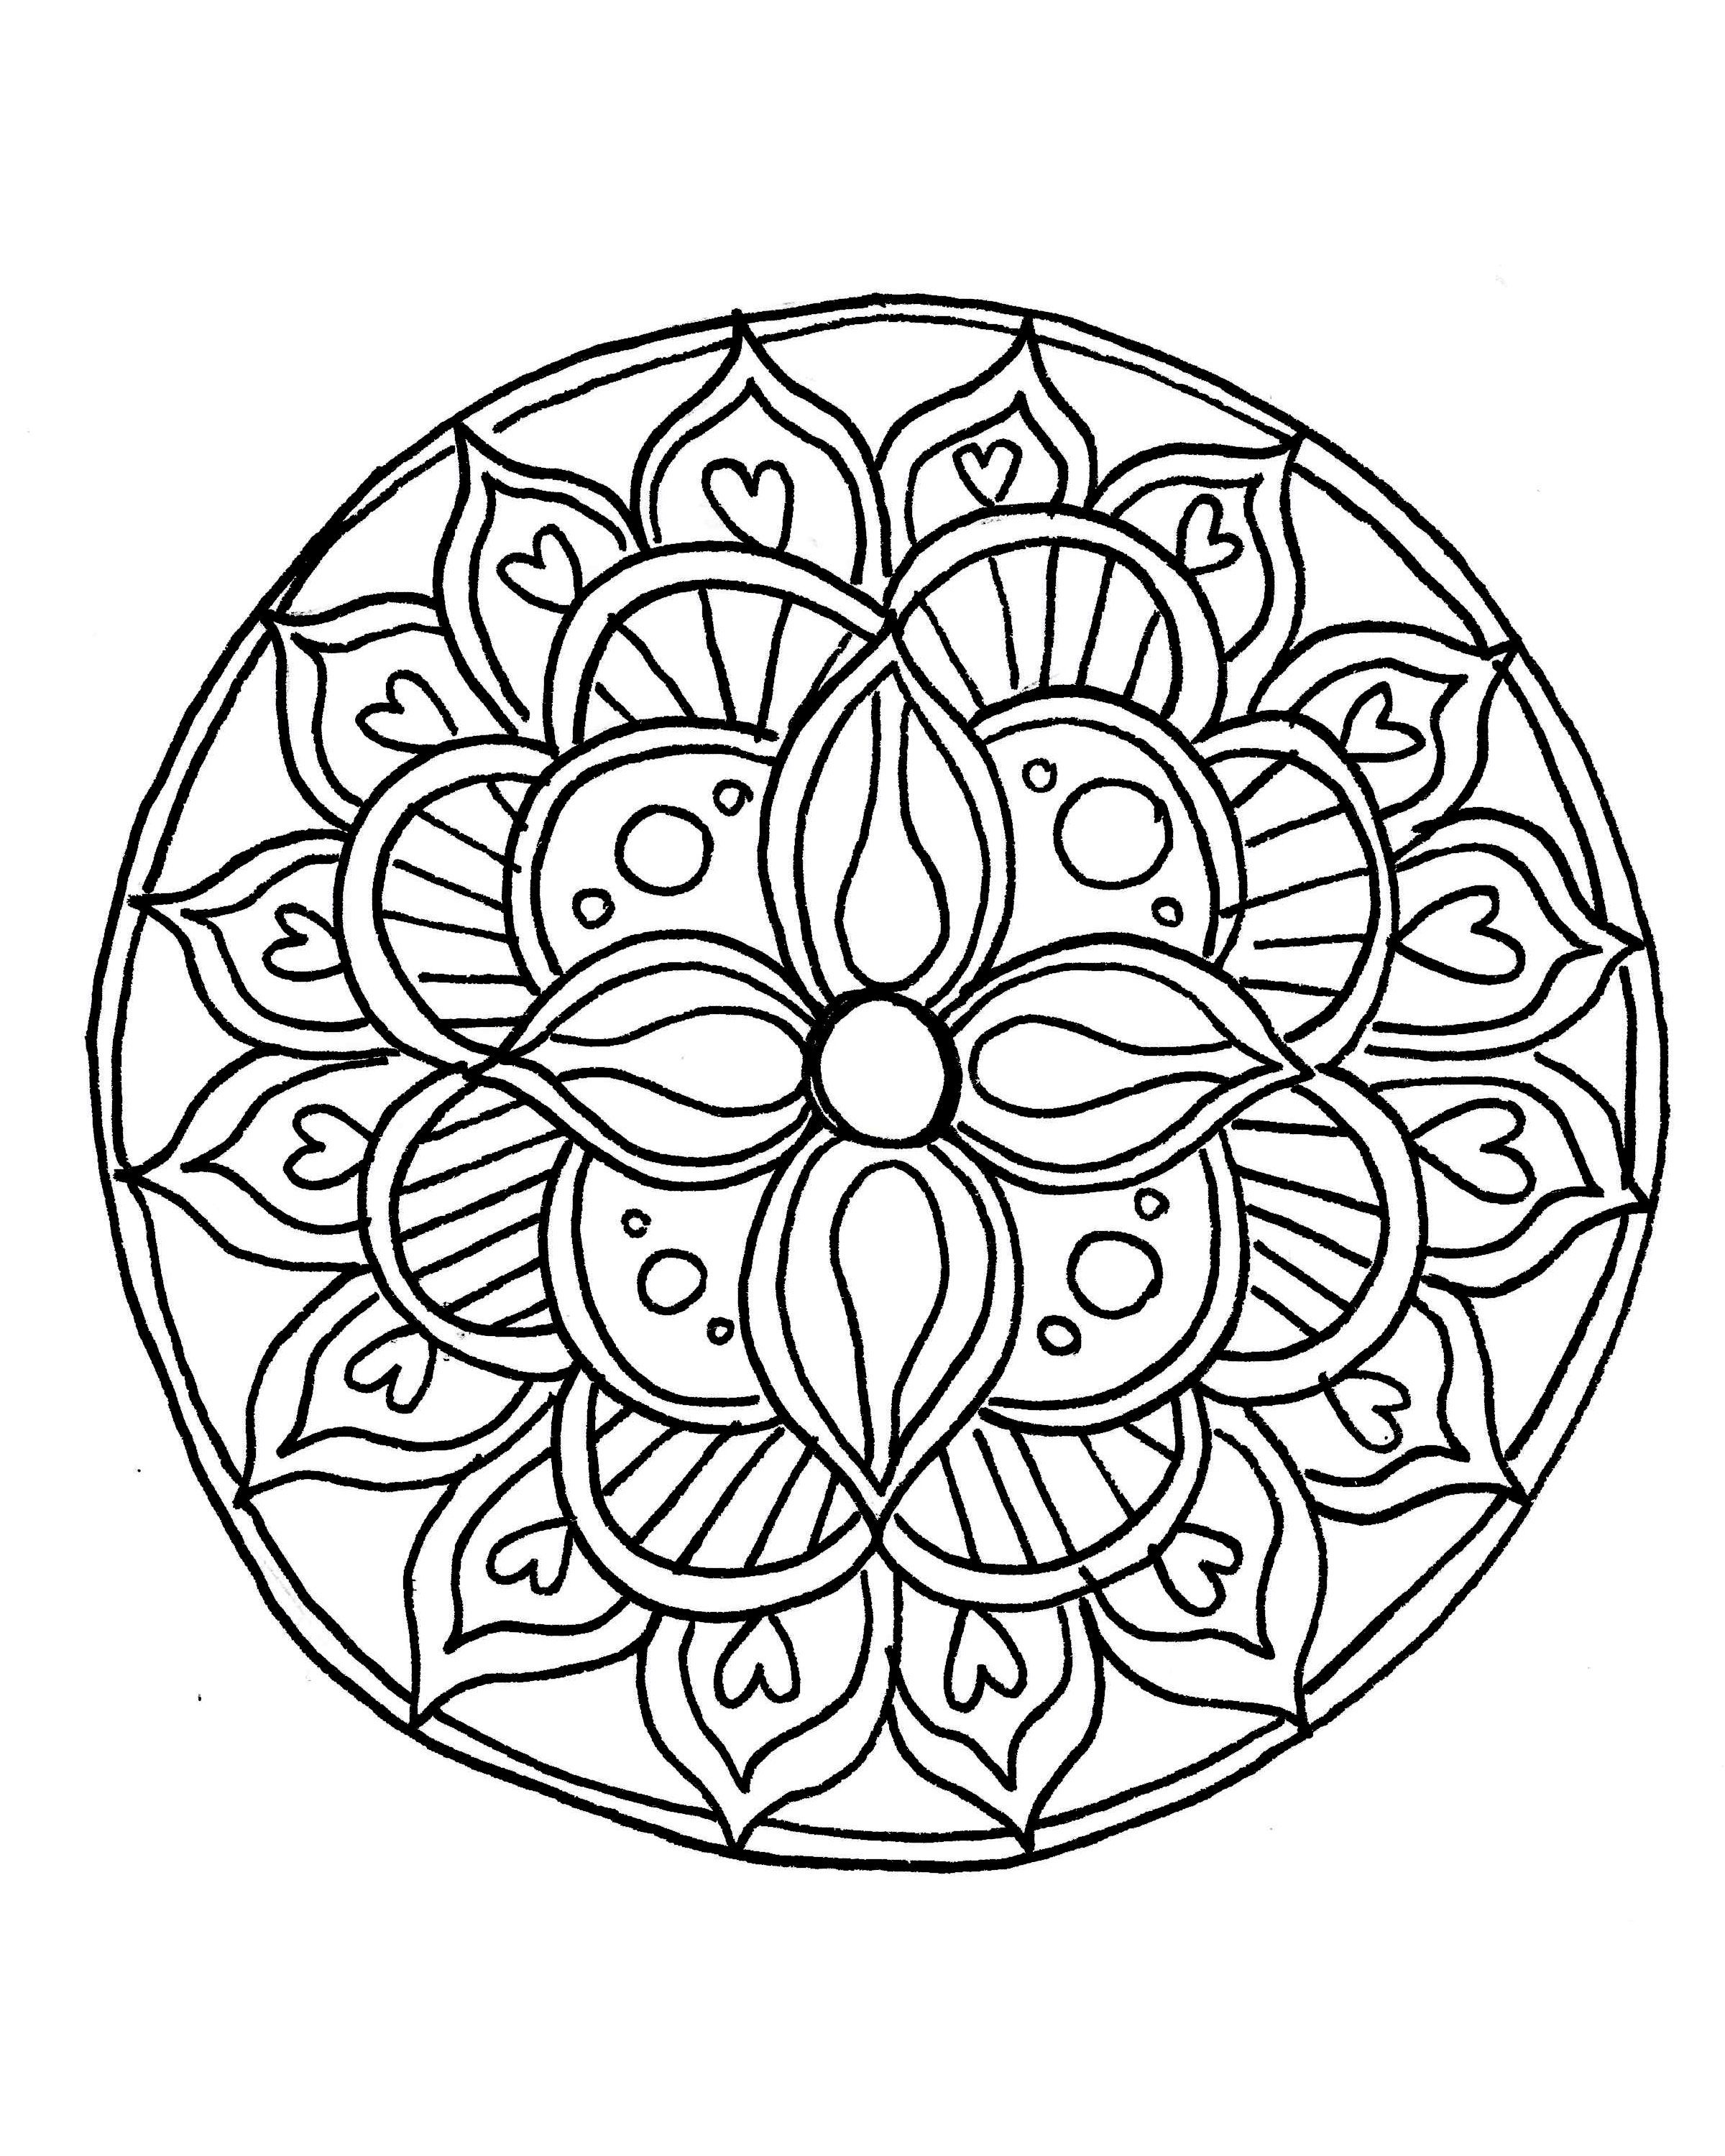 How To Draw Your Own Mandala Coloring Pages Mandala Coloring Pages Mandala Coloring Books Mandala Coloring